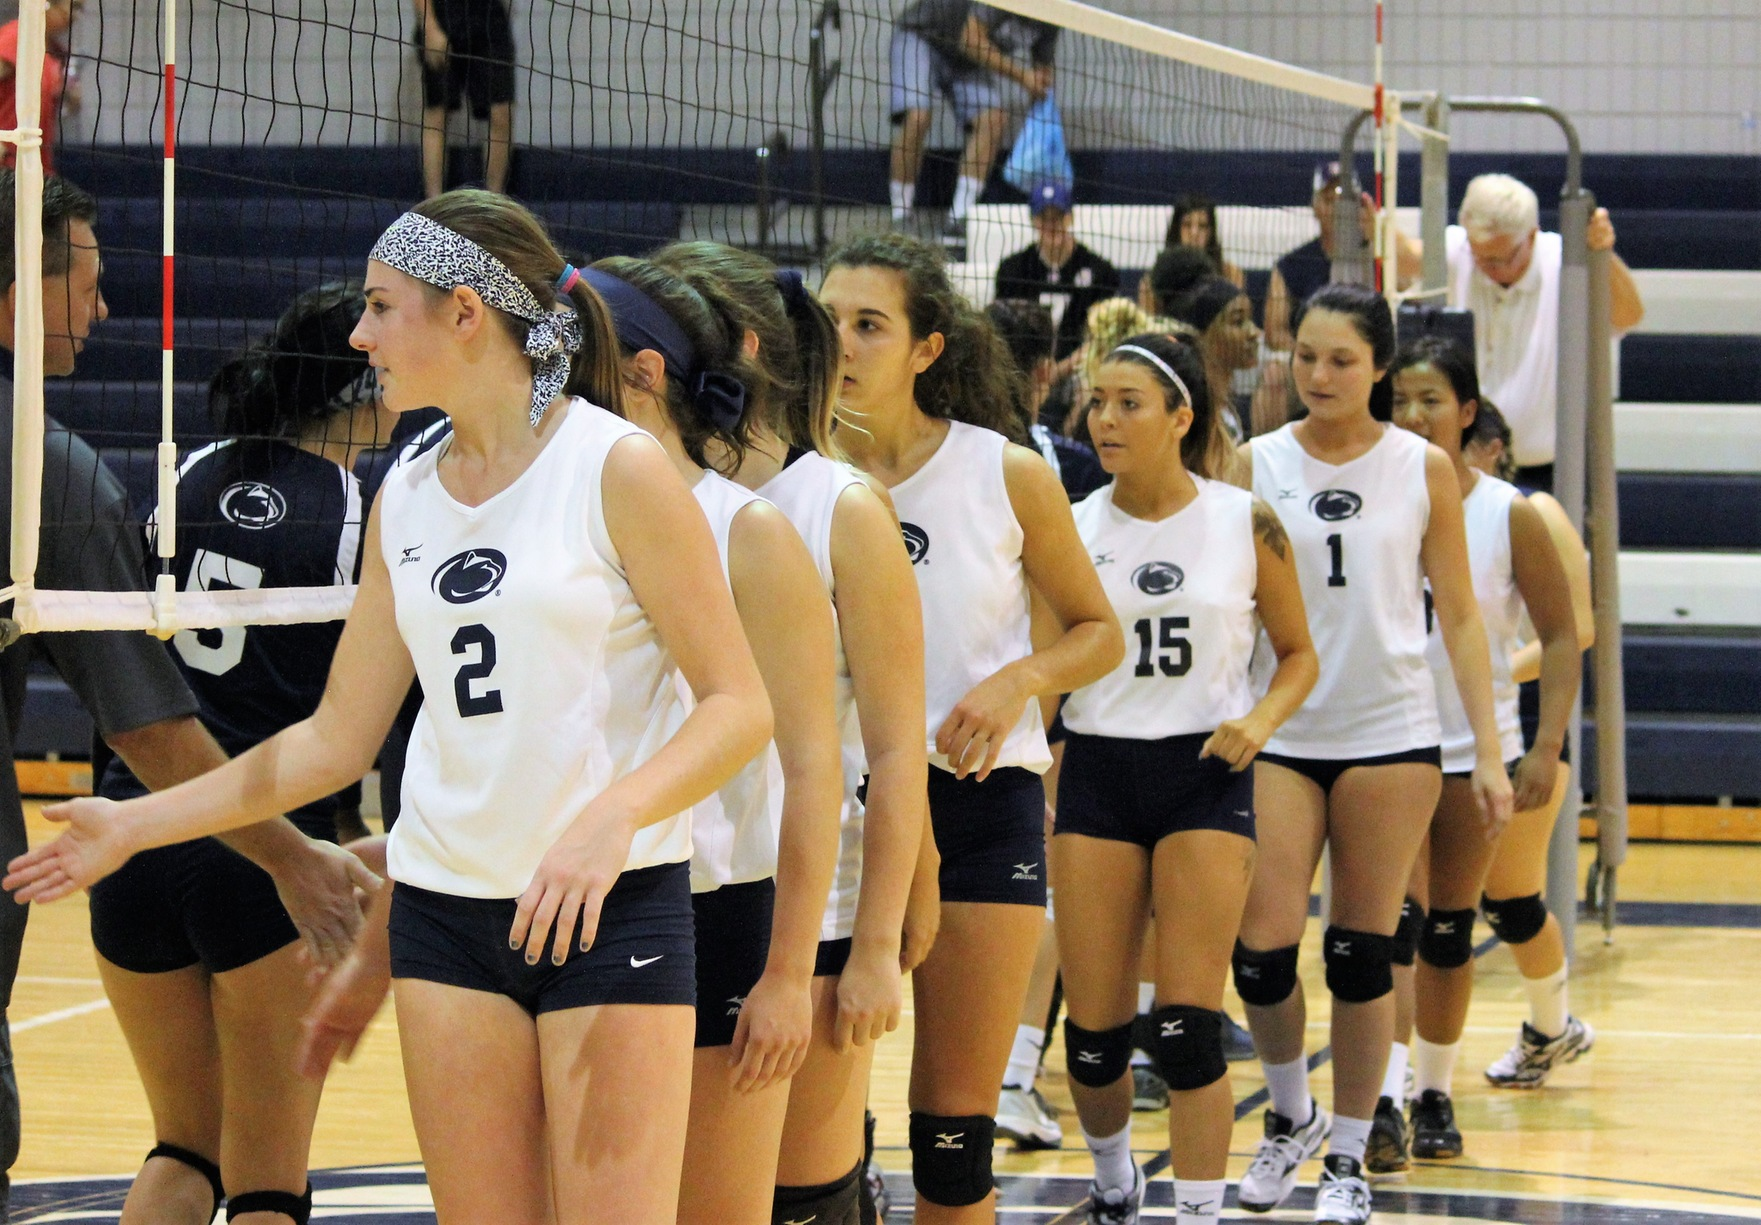 Women's Volleyball Drops Two at PSUAC Quad Match